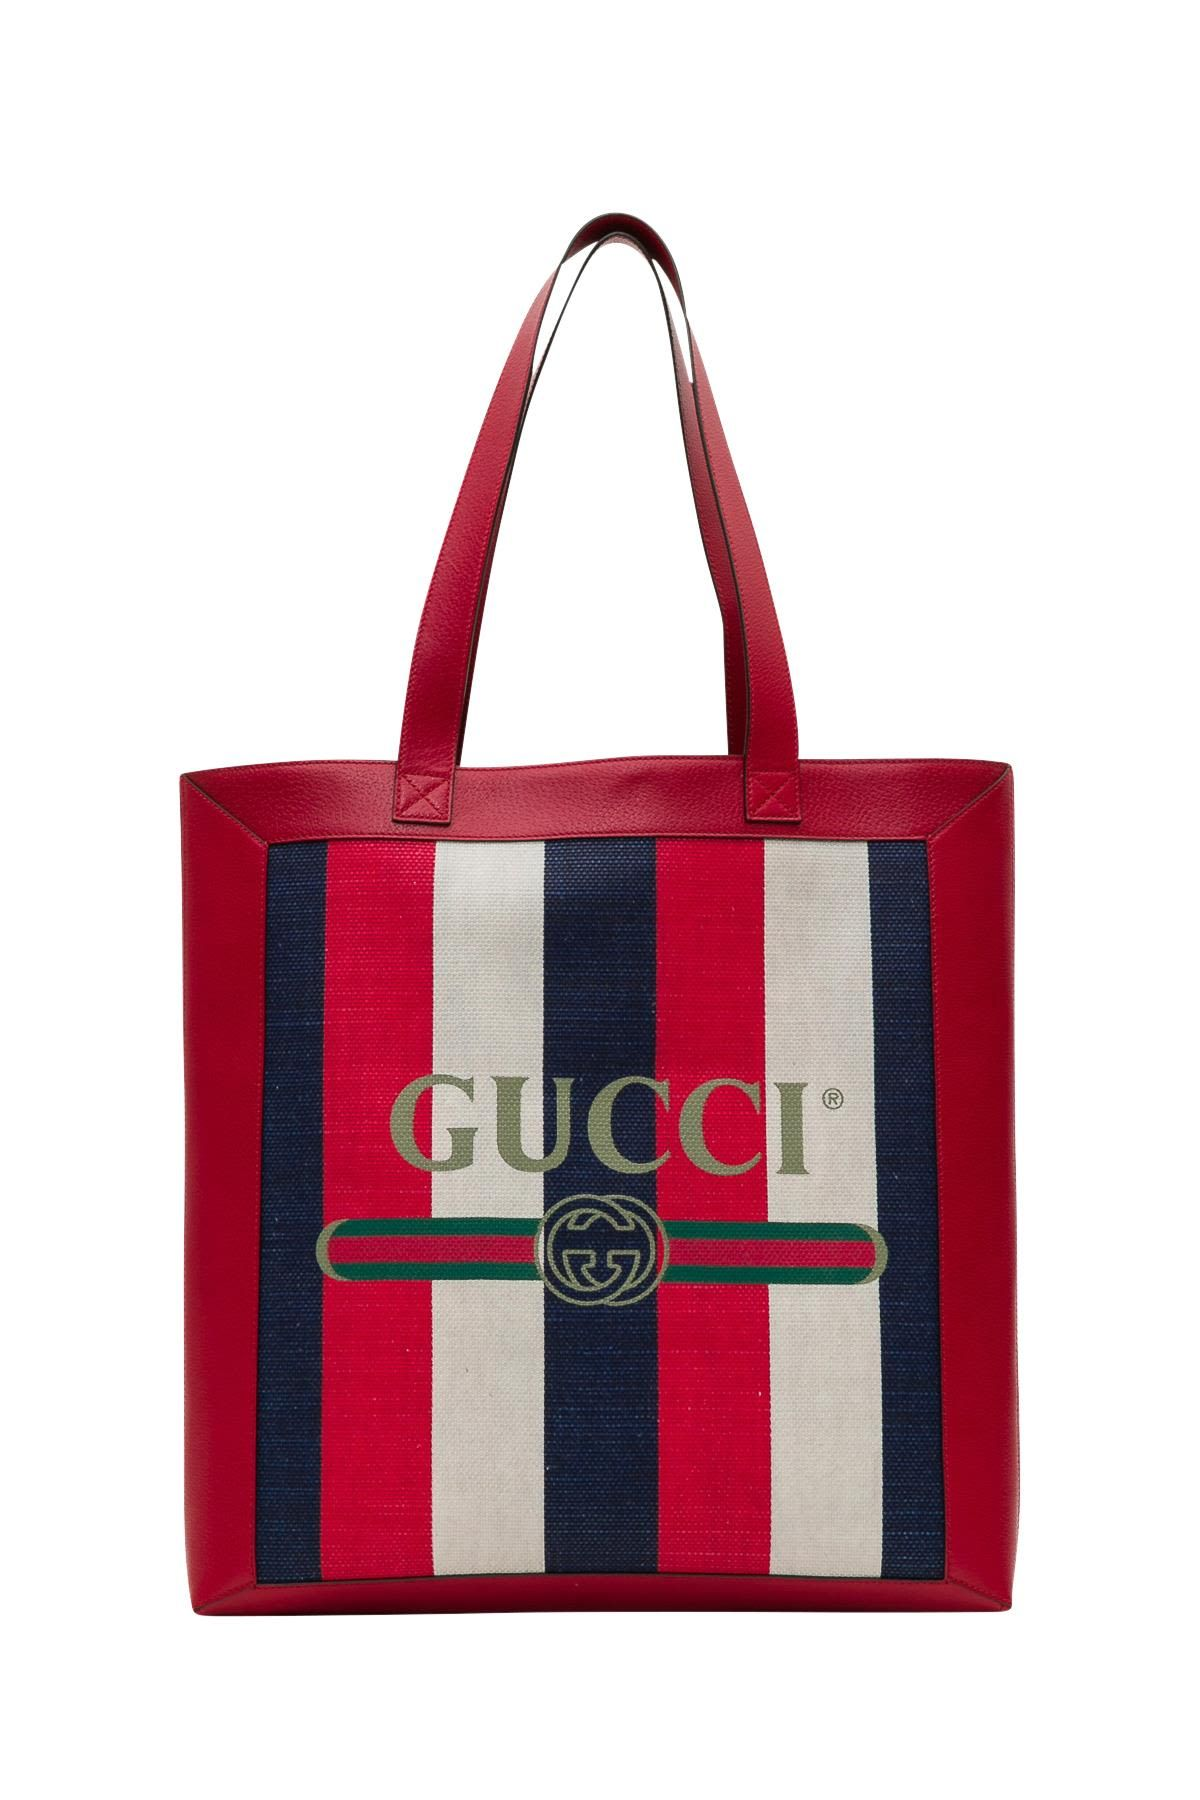 0bf429f5571f GUCCI PRINT TOTE.  gucci  bags  canvas  tote  leather  lining  linen  hand  bags  cotton